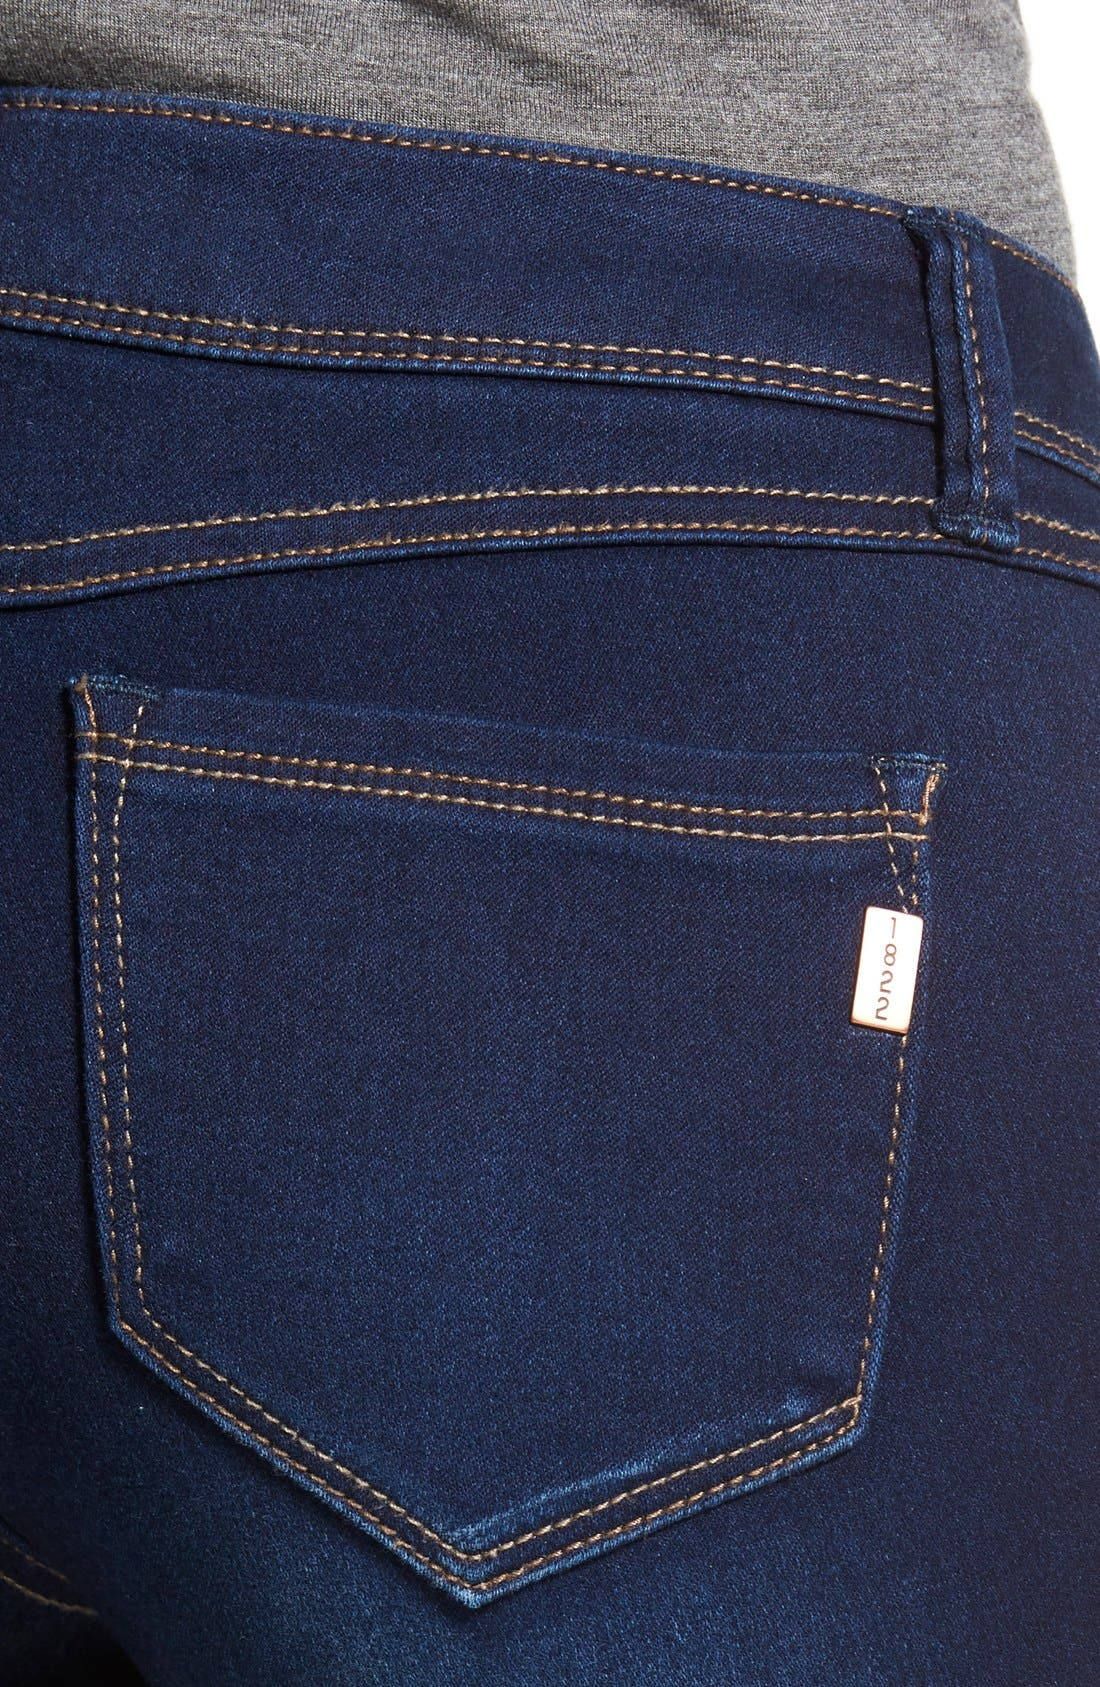 Butter Skinny Jeans,                             Alternate thumbnail 2, color,                             LENNOX